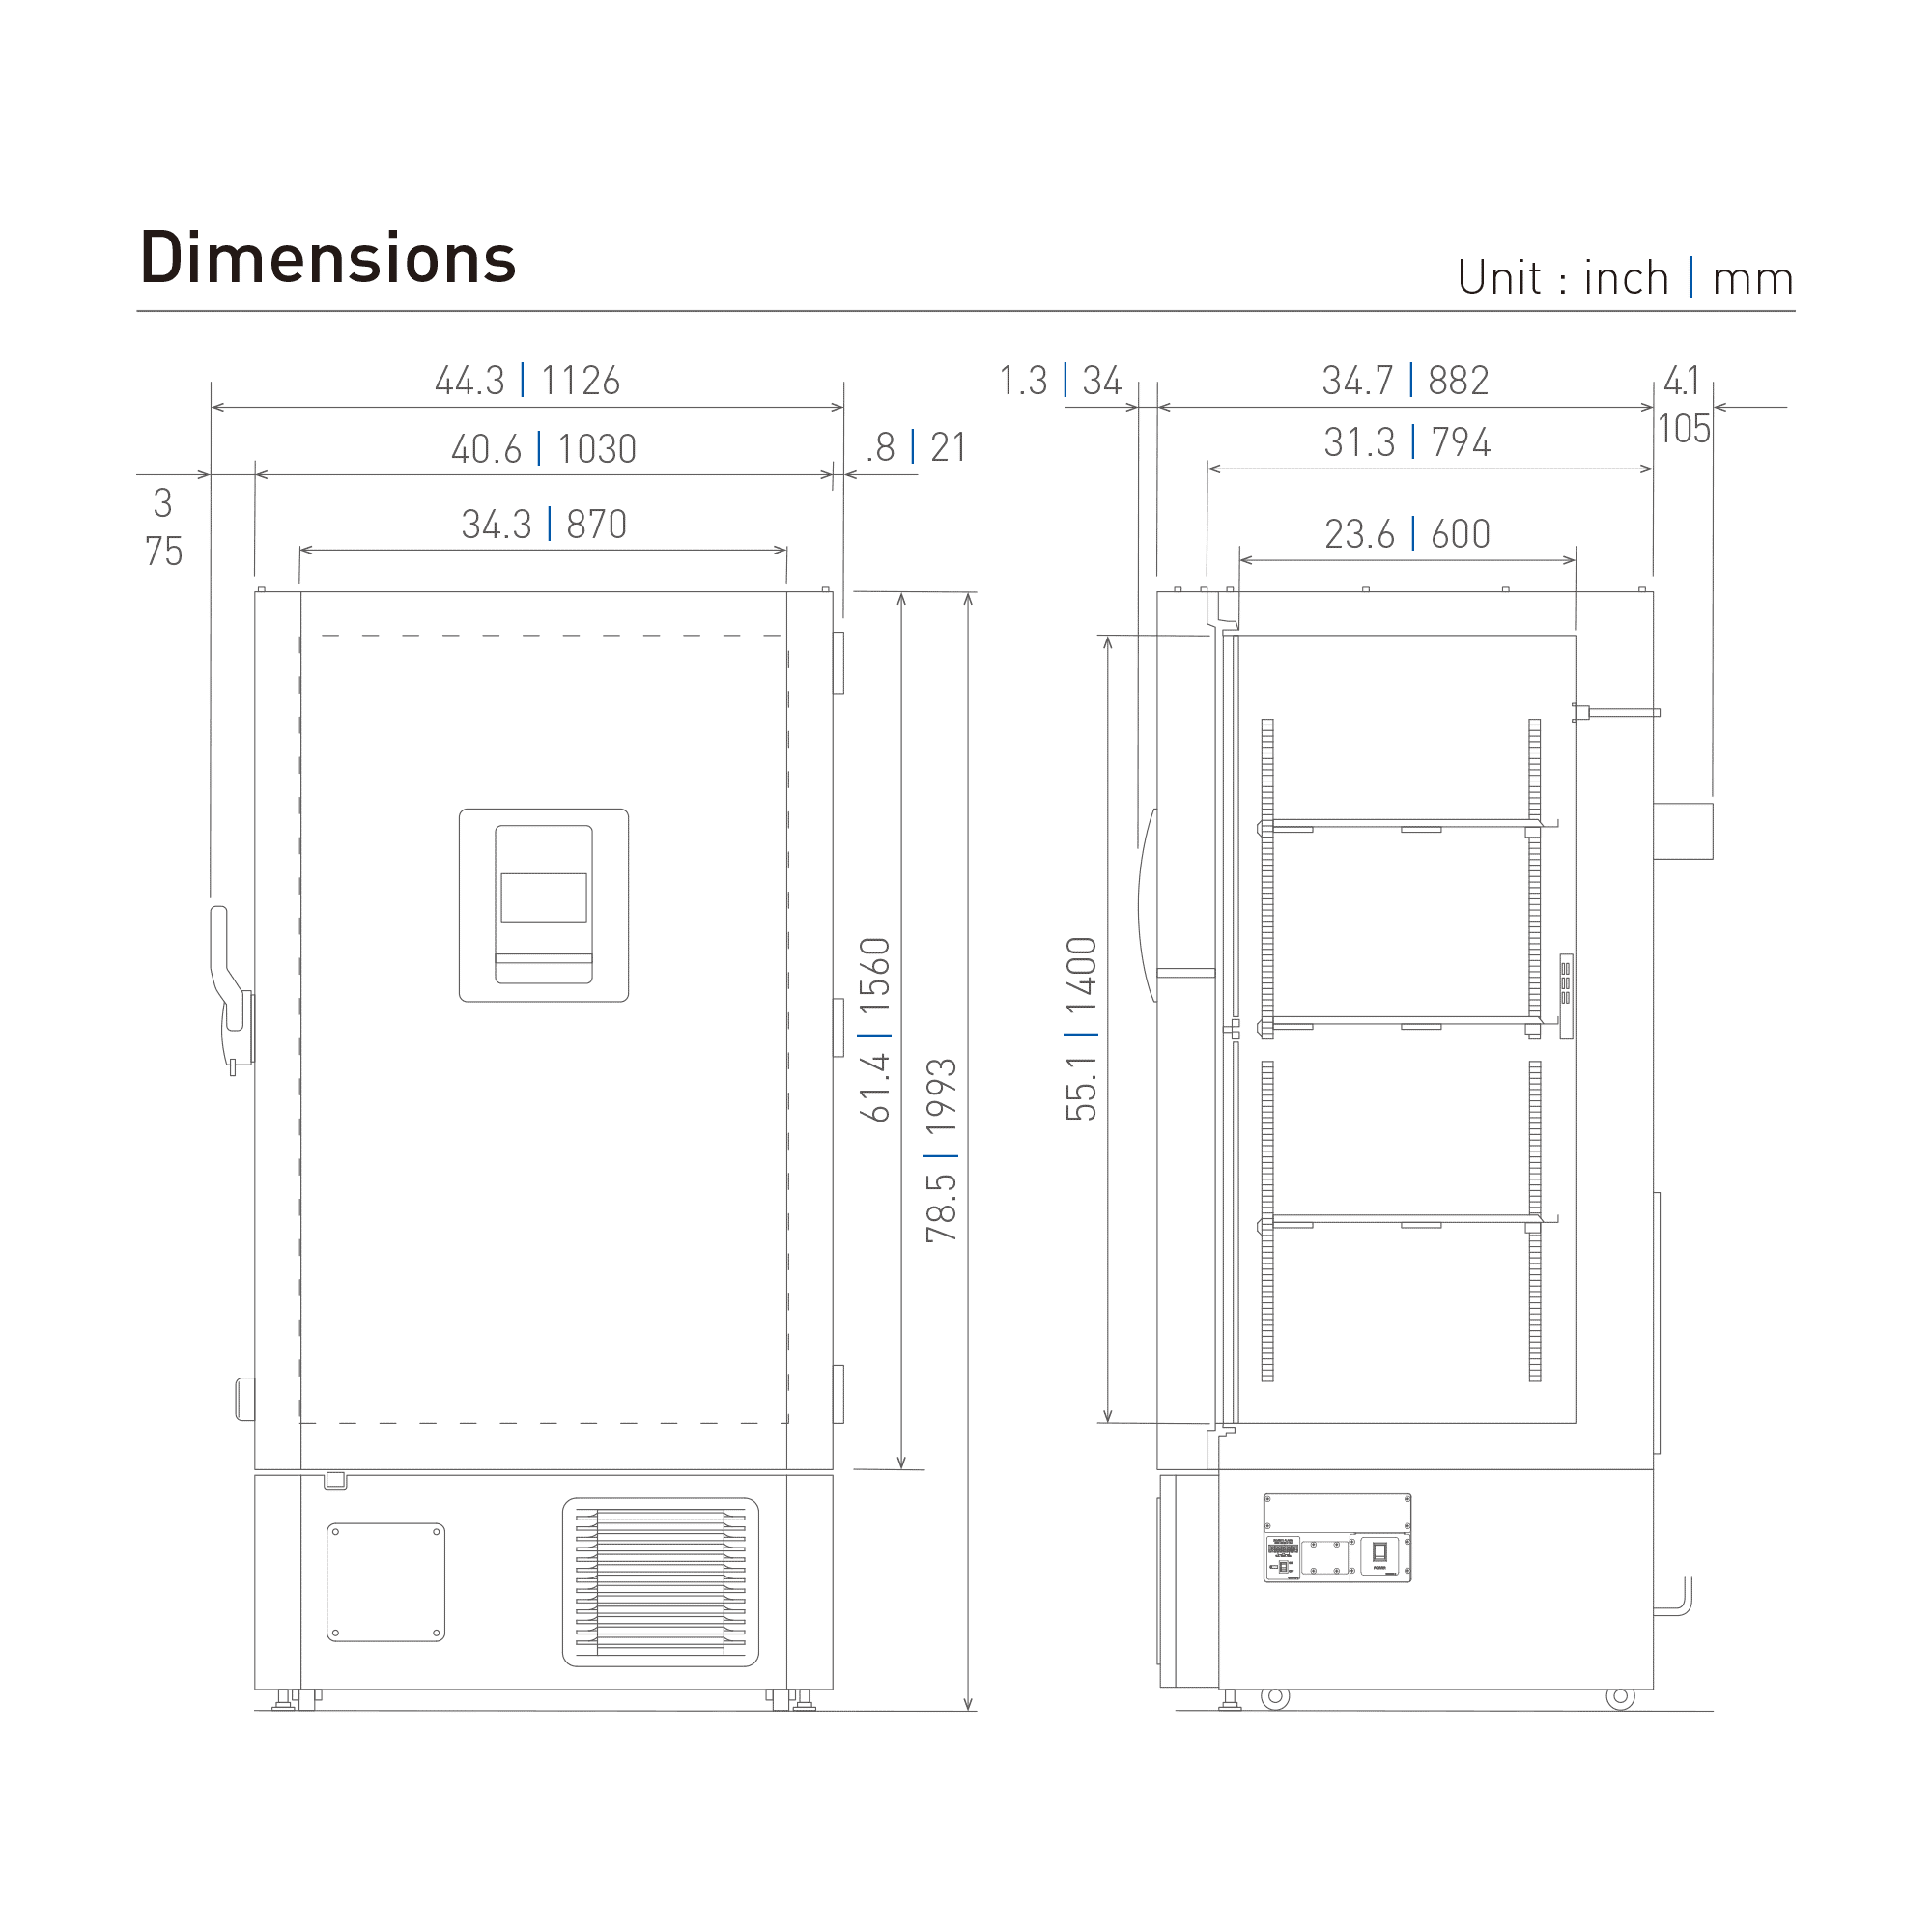 MDF-DU702VH-PA Ultra Low Freezer Dimensional Drawing